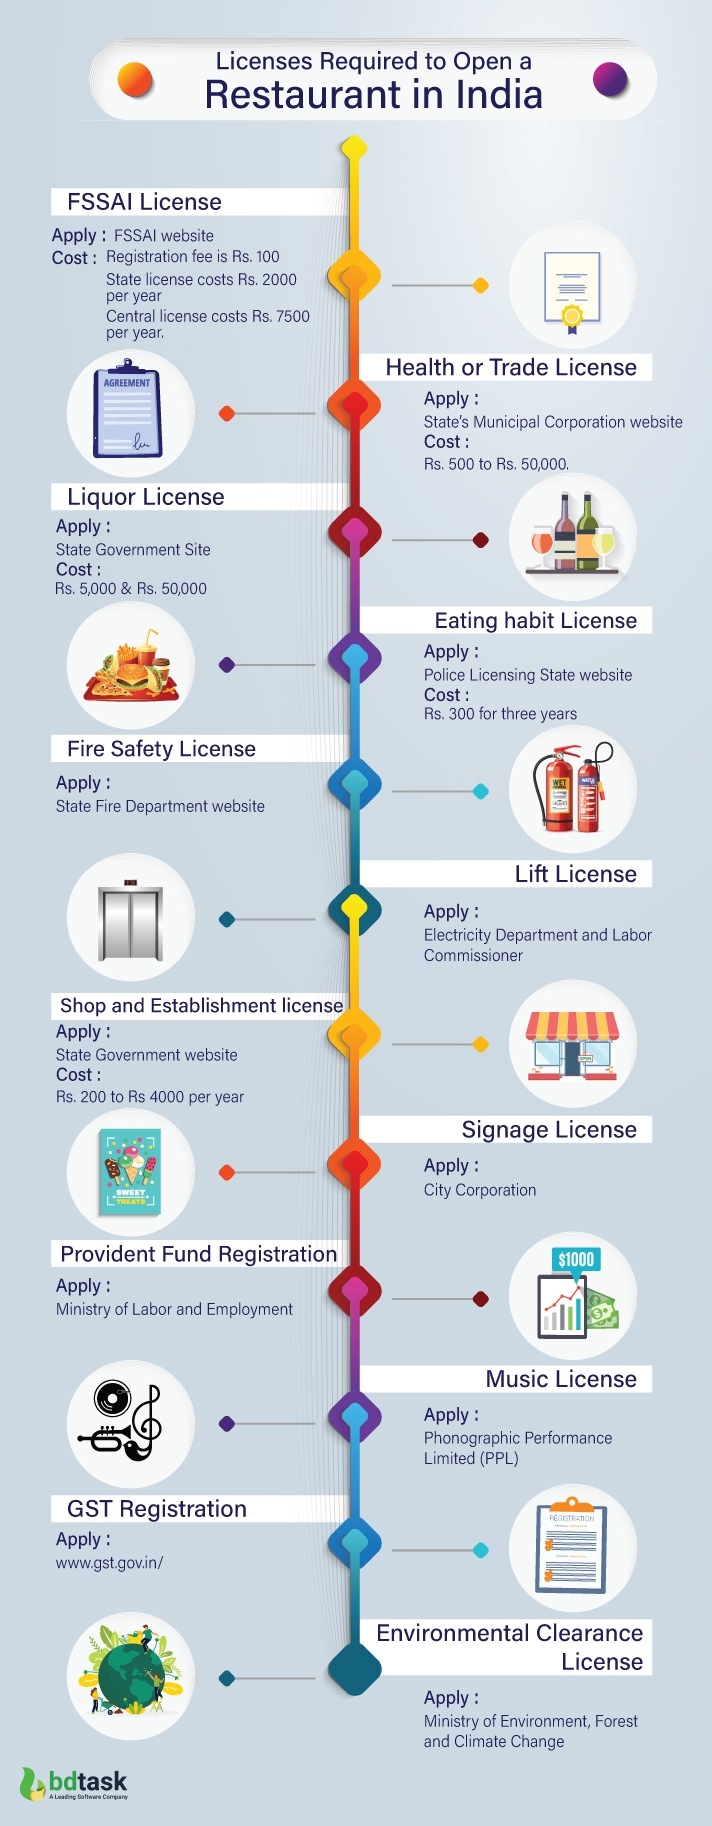 12 Legal Licenses Required to Open a Restaurant in India